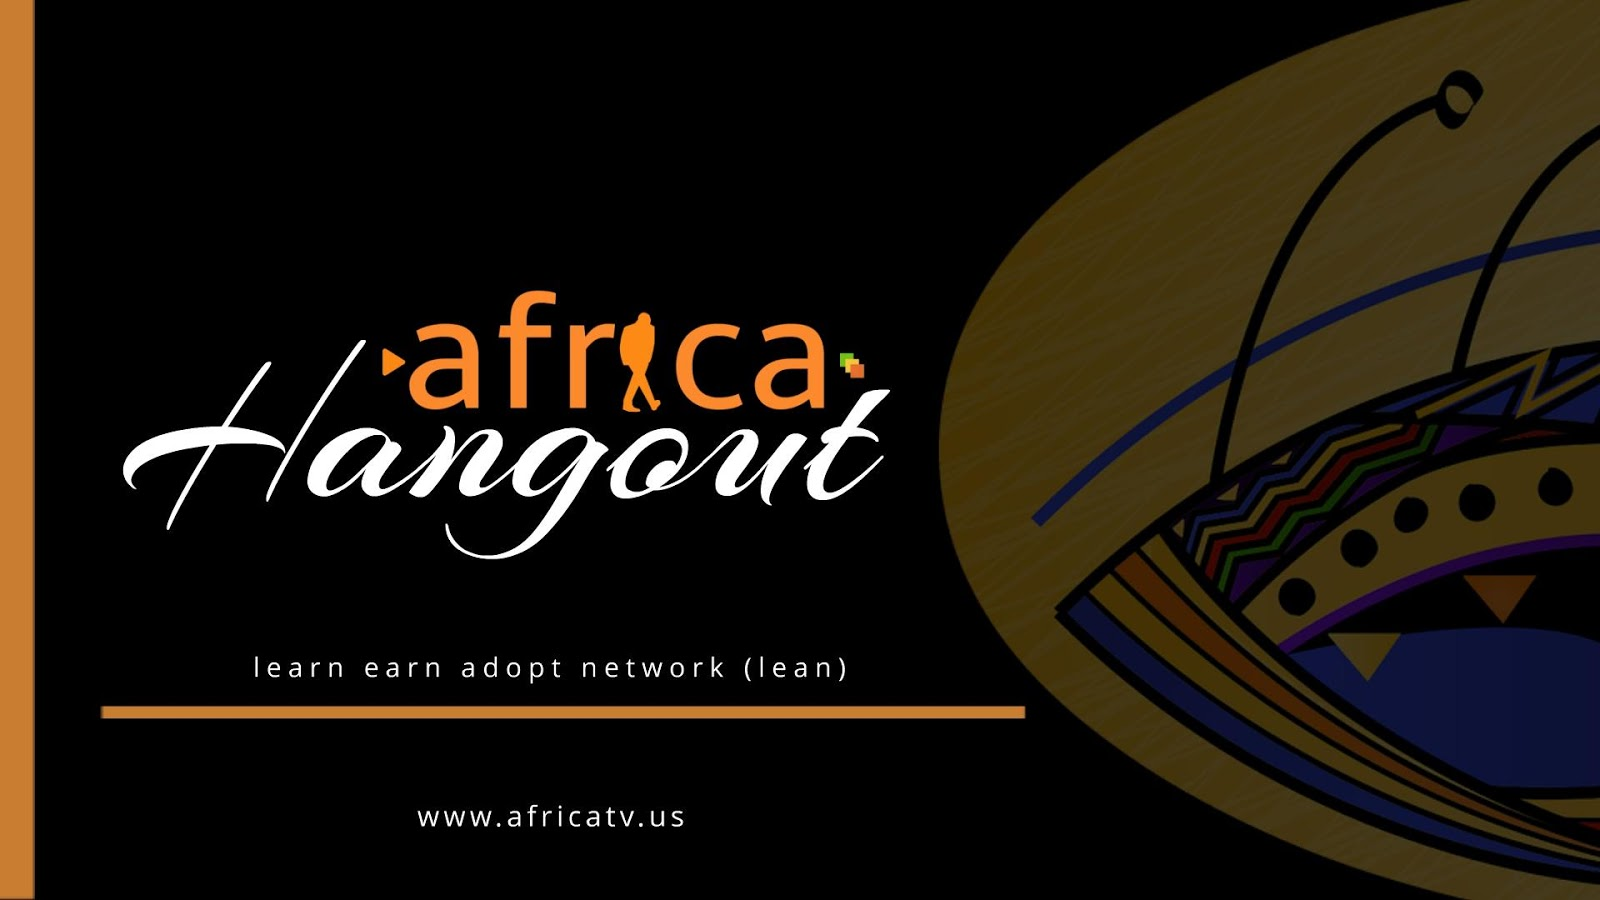 Africa Hangout- Business, News- screenshot